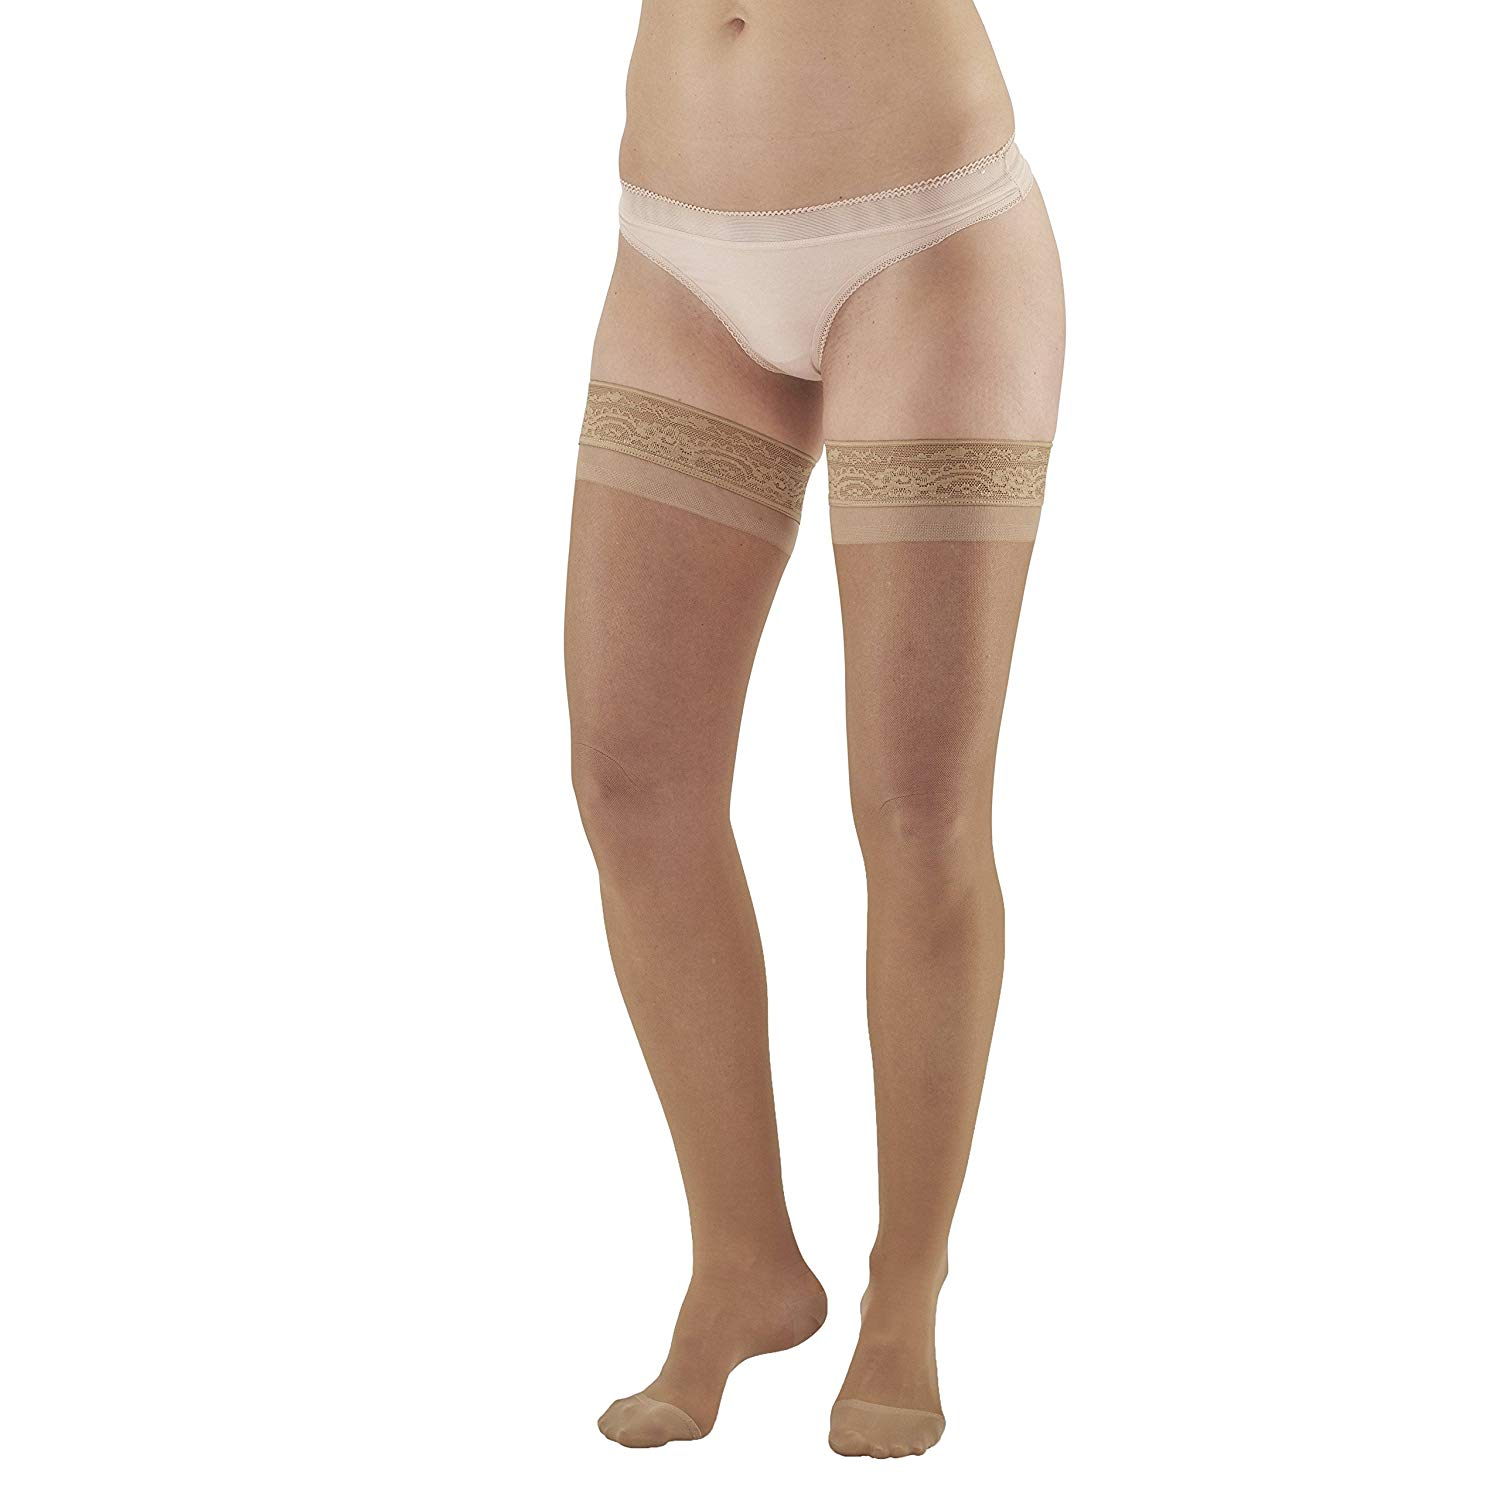 58a7e1f2fe5 Get Quotations · Ames Walker AW Style 4 Sheer Support 15-20mmHg Moderate  Compression Closed Toe Thigh High